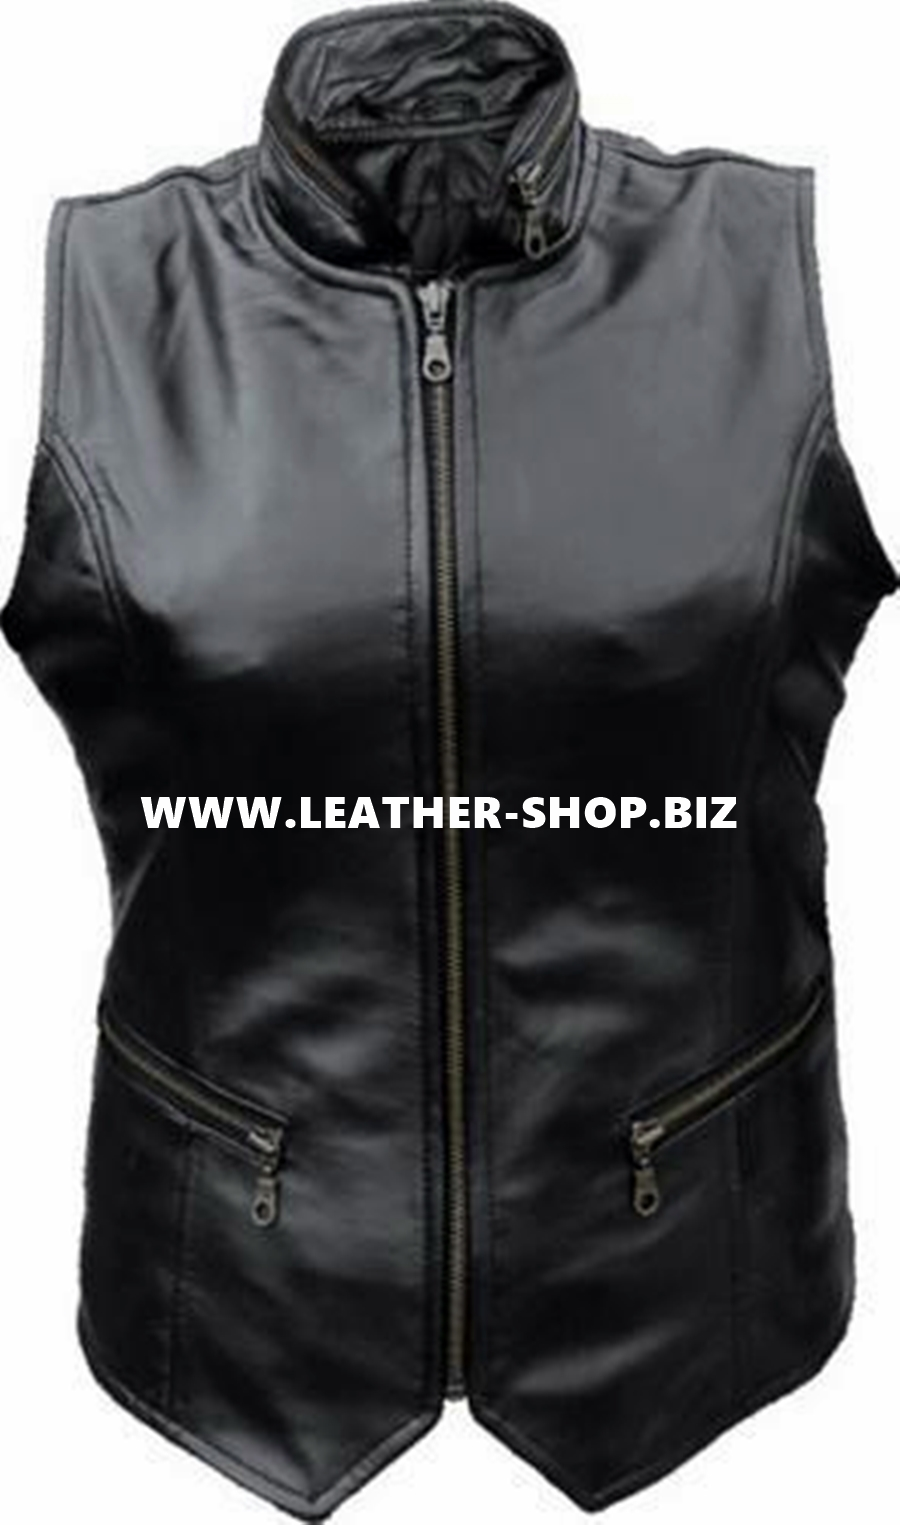 womens-læder-vest-custom-made-stil-wlv1300-www.leather-shop.biz-front-pic.jpg